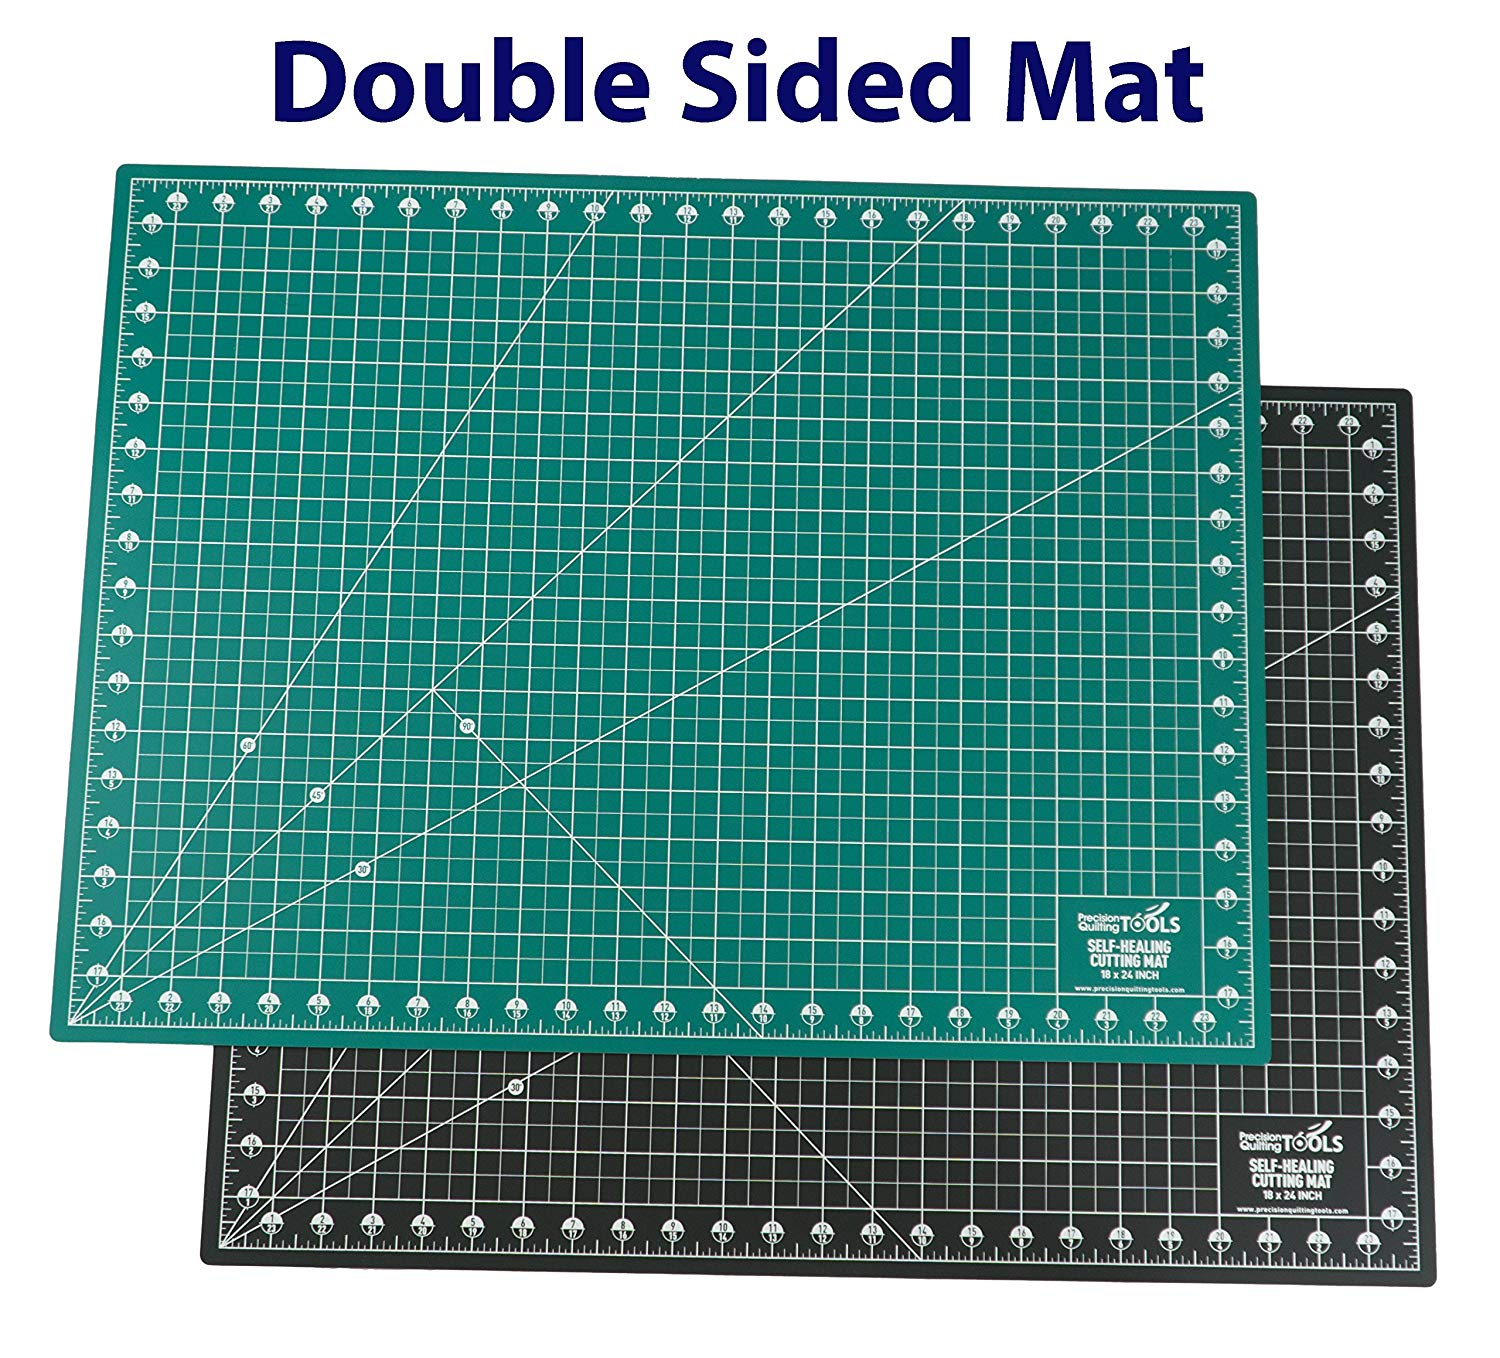 Precision Quilting Tools - Self Healing Cutting Mat - 18 x 24 inch - Double Sided - A2